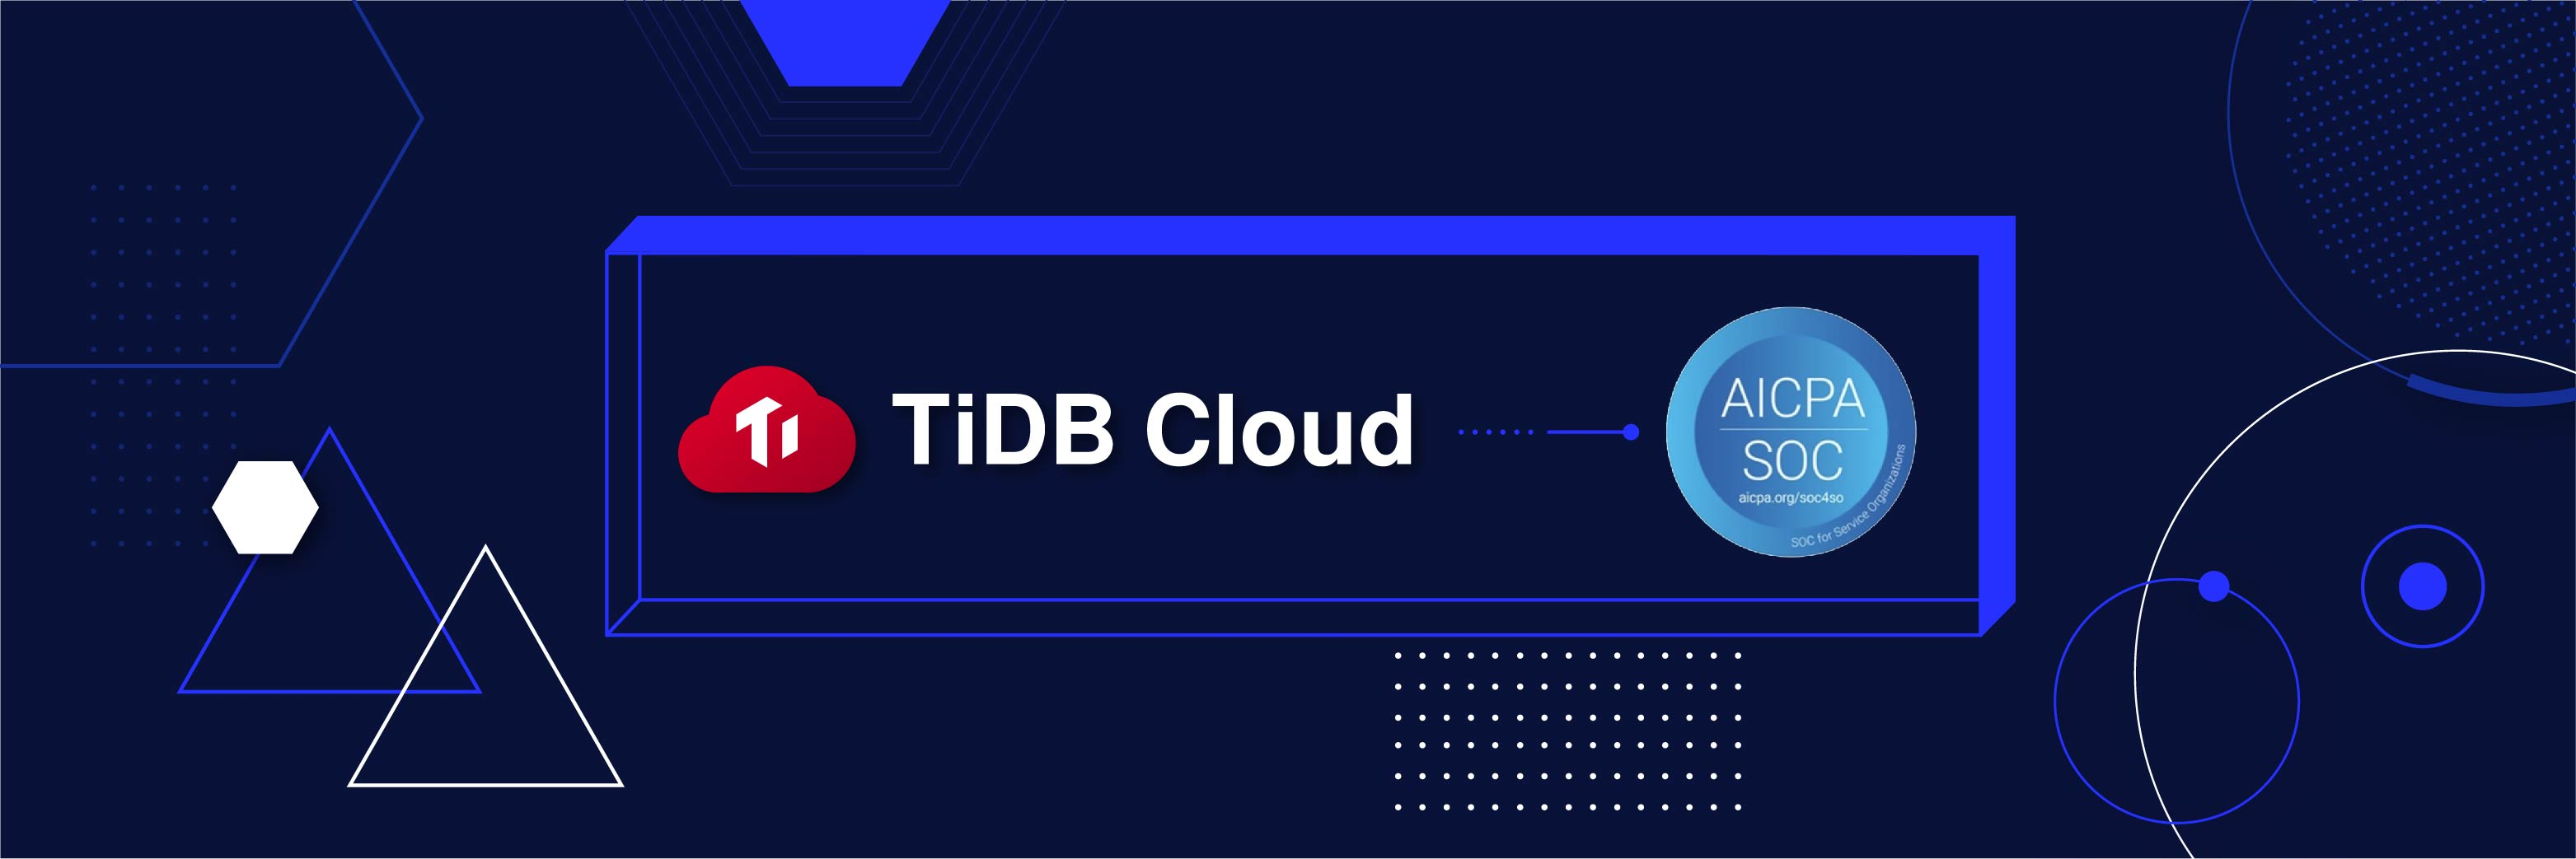 PingCAP Successfully Completes SOC 2 Type 2 Examination for TiDB Cloud